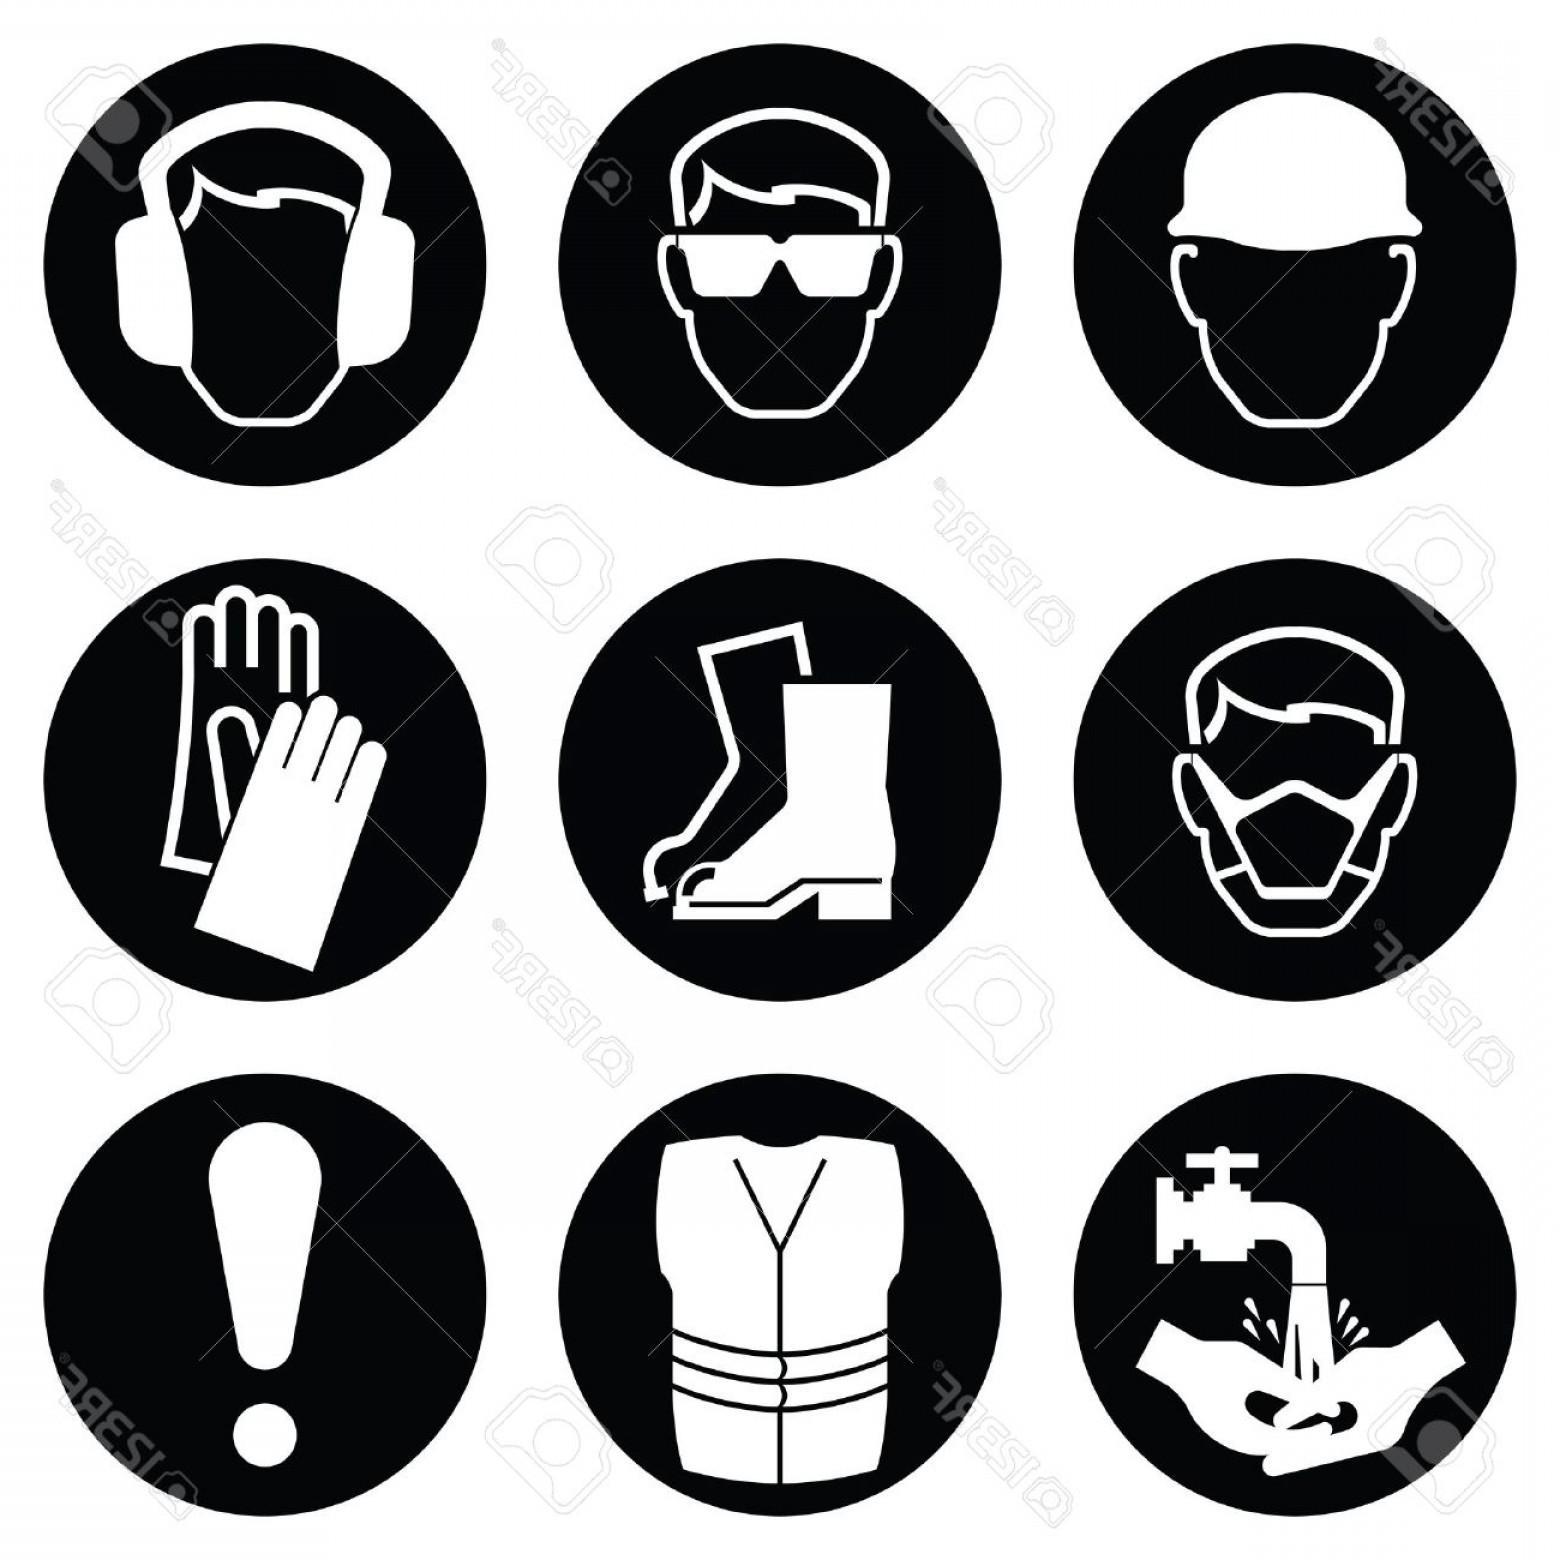 Construction Safety Goggles Vector: Photostock Vector Monochrome Black And White Construction And Manufacturing Industry Health And Safety Icon Collection